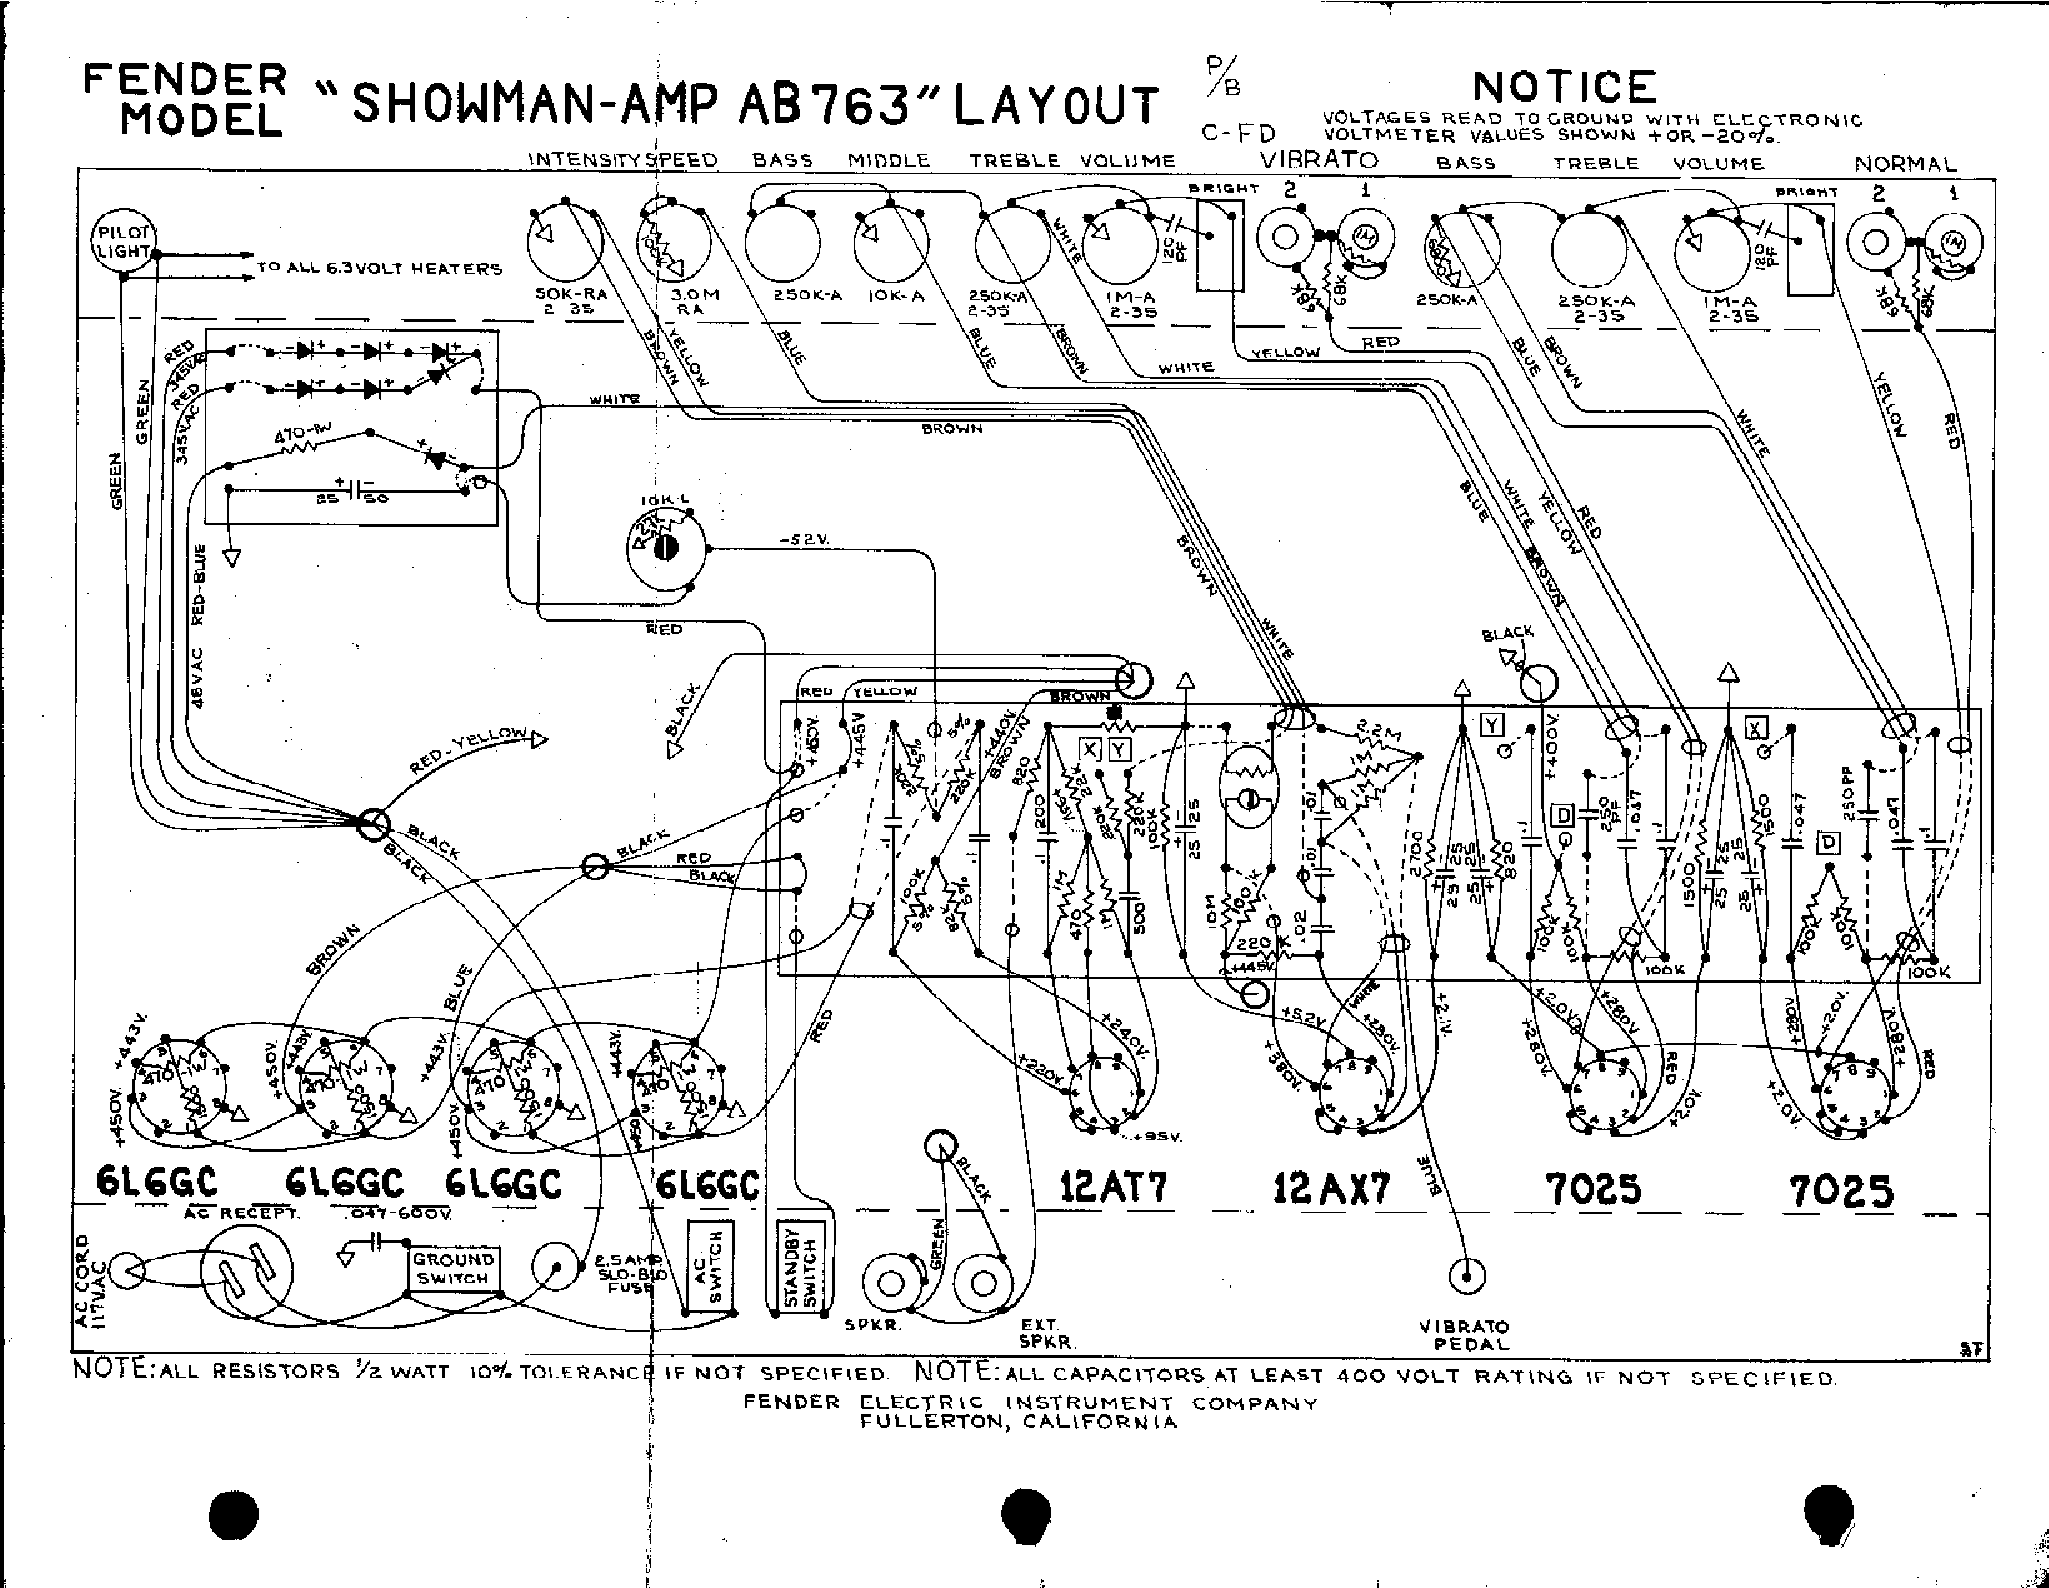 FENDER SHOWMAN-AB763-LAYOUT Service Manual download